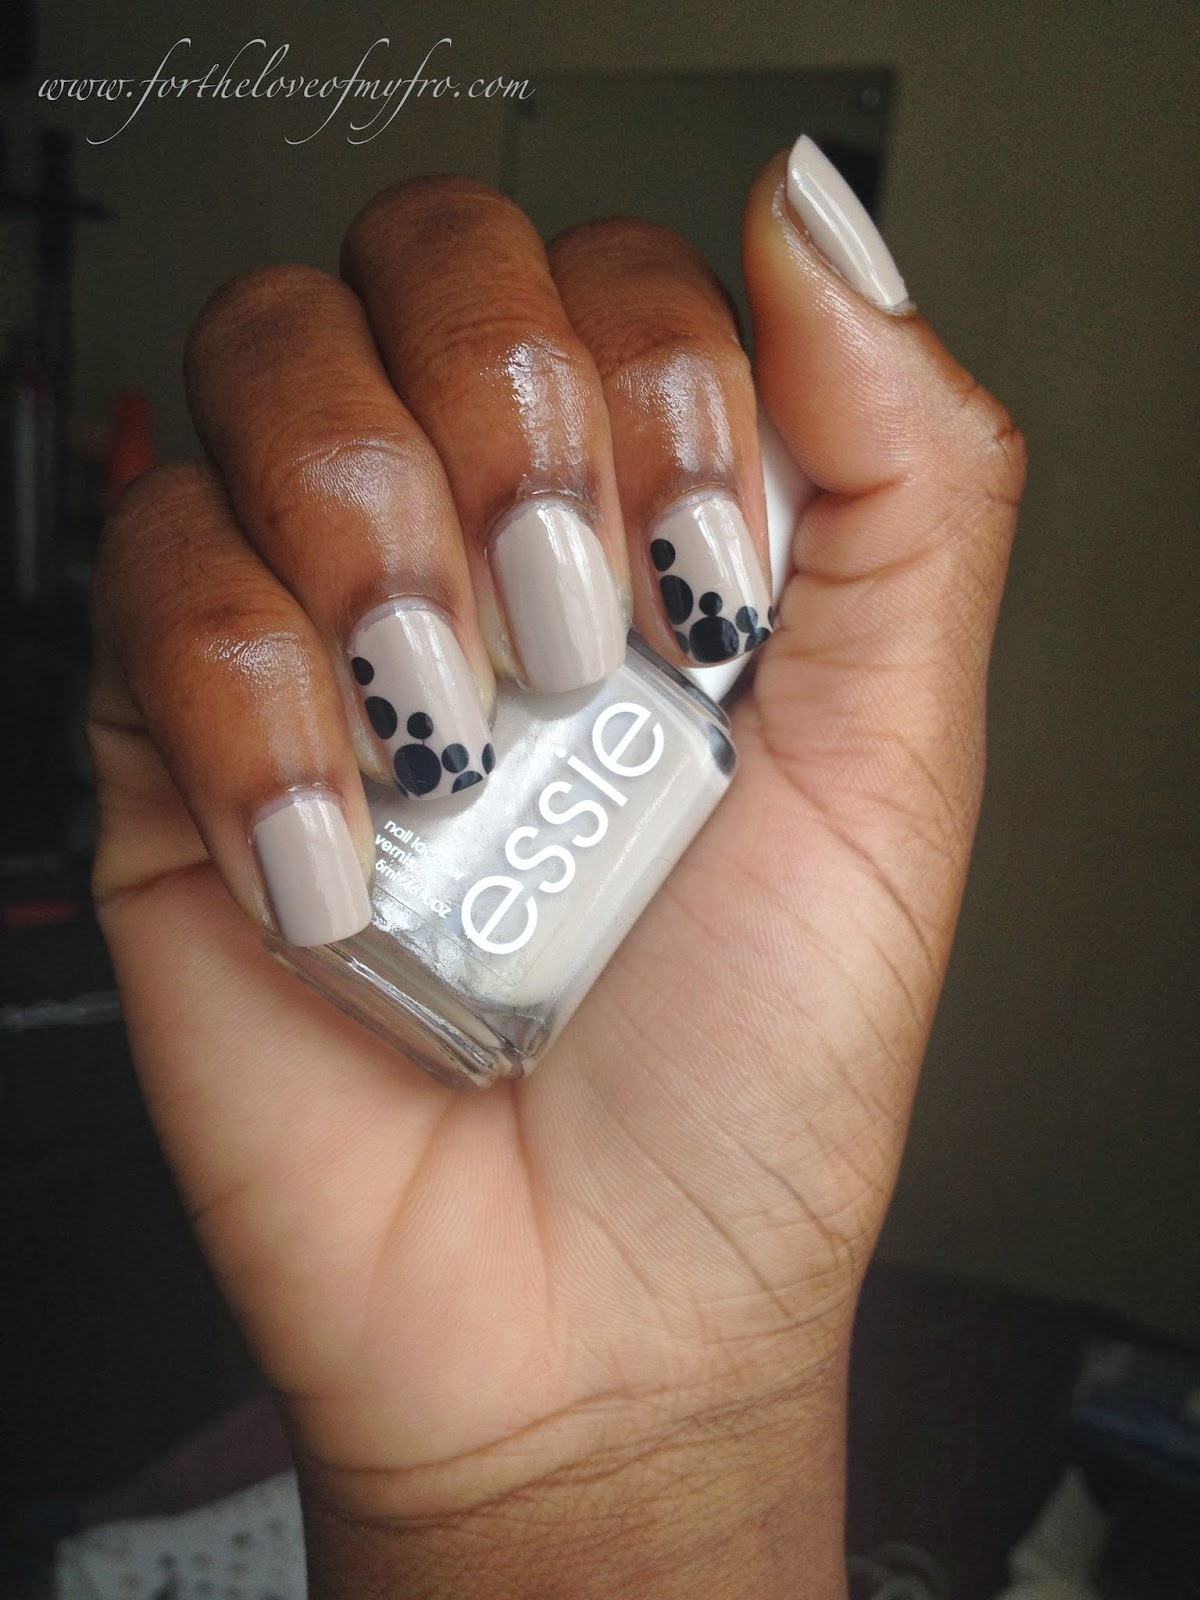 Nude Nails + Polkadots | For The Love of My \'Fro